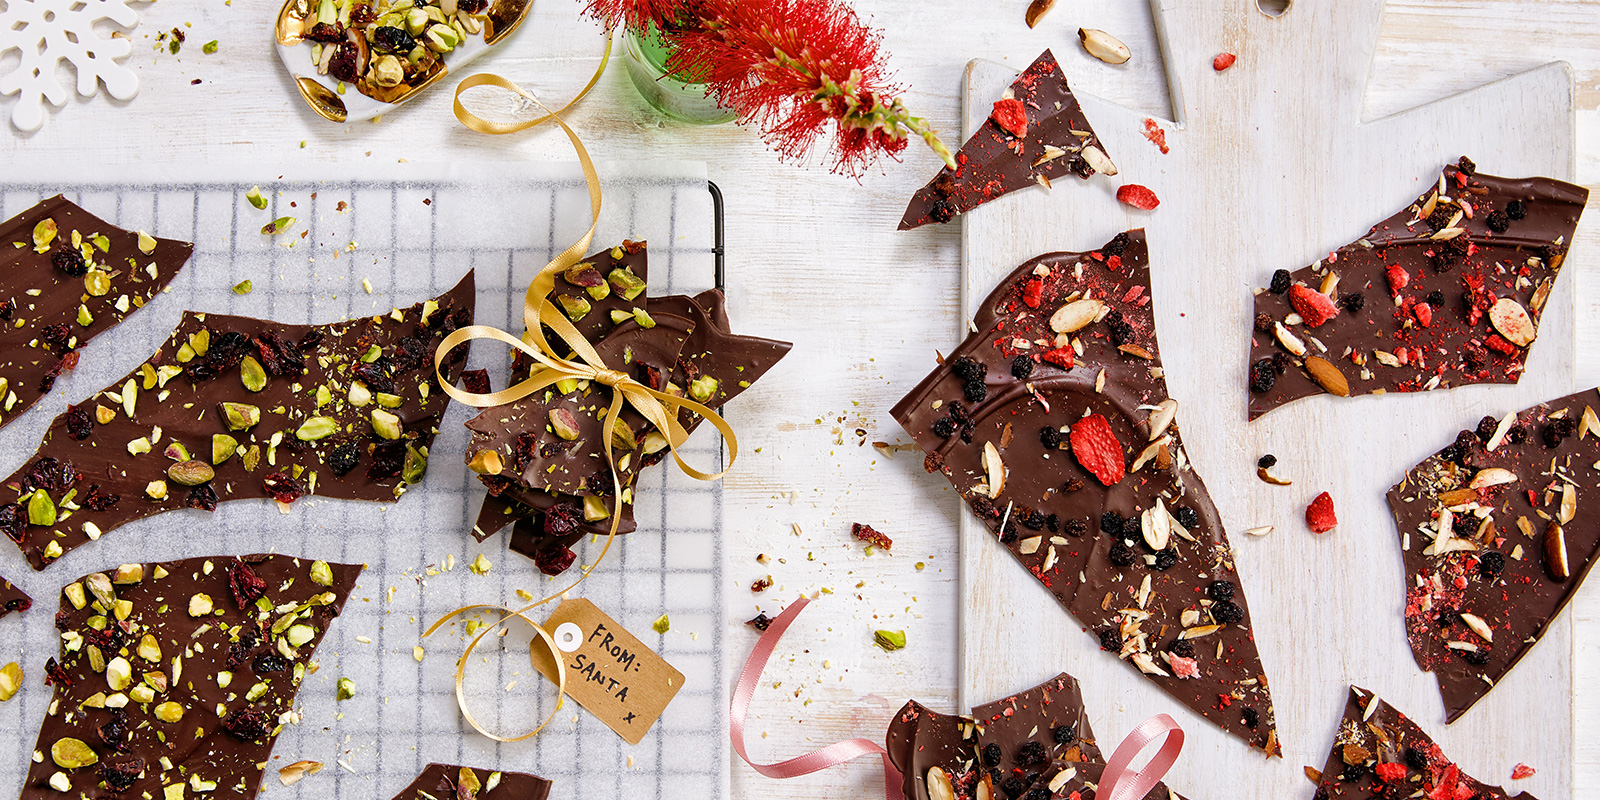 4 Ingredients Christmas recipes